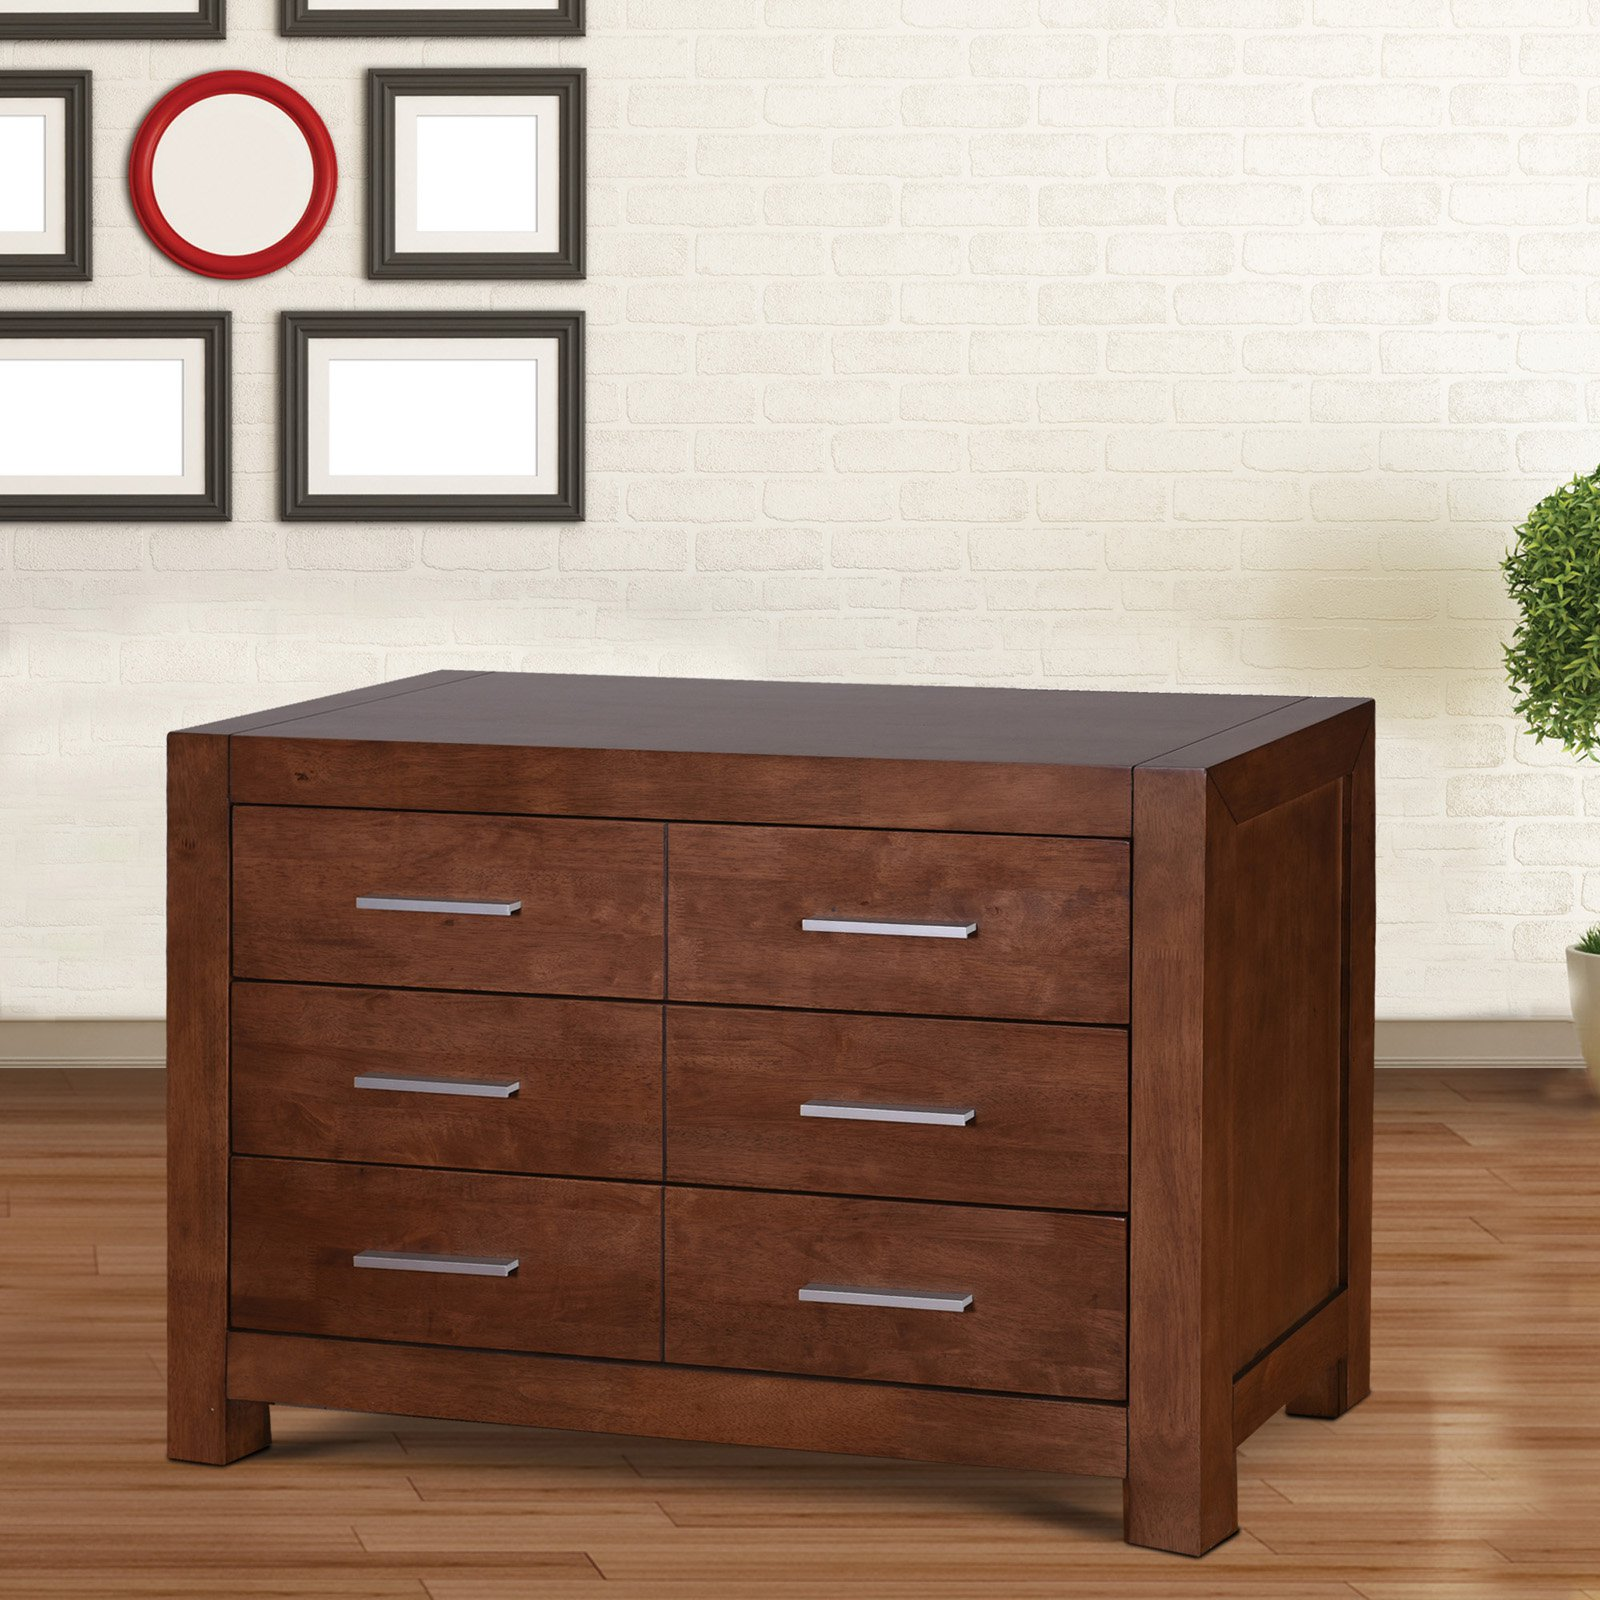 Midtown Concept Omaha 6-Drawer Dresser